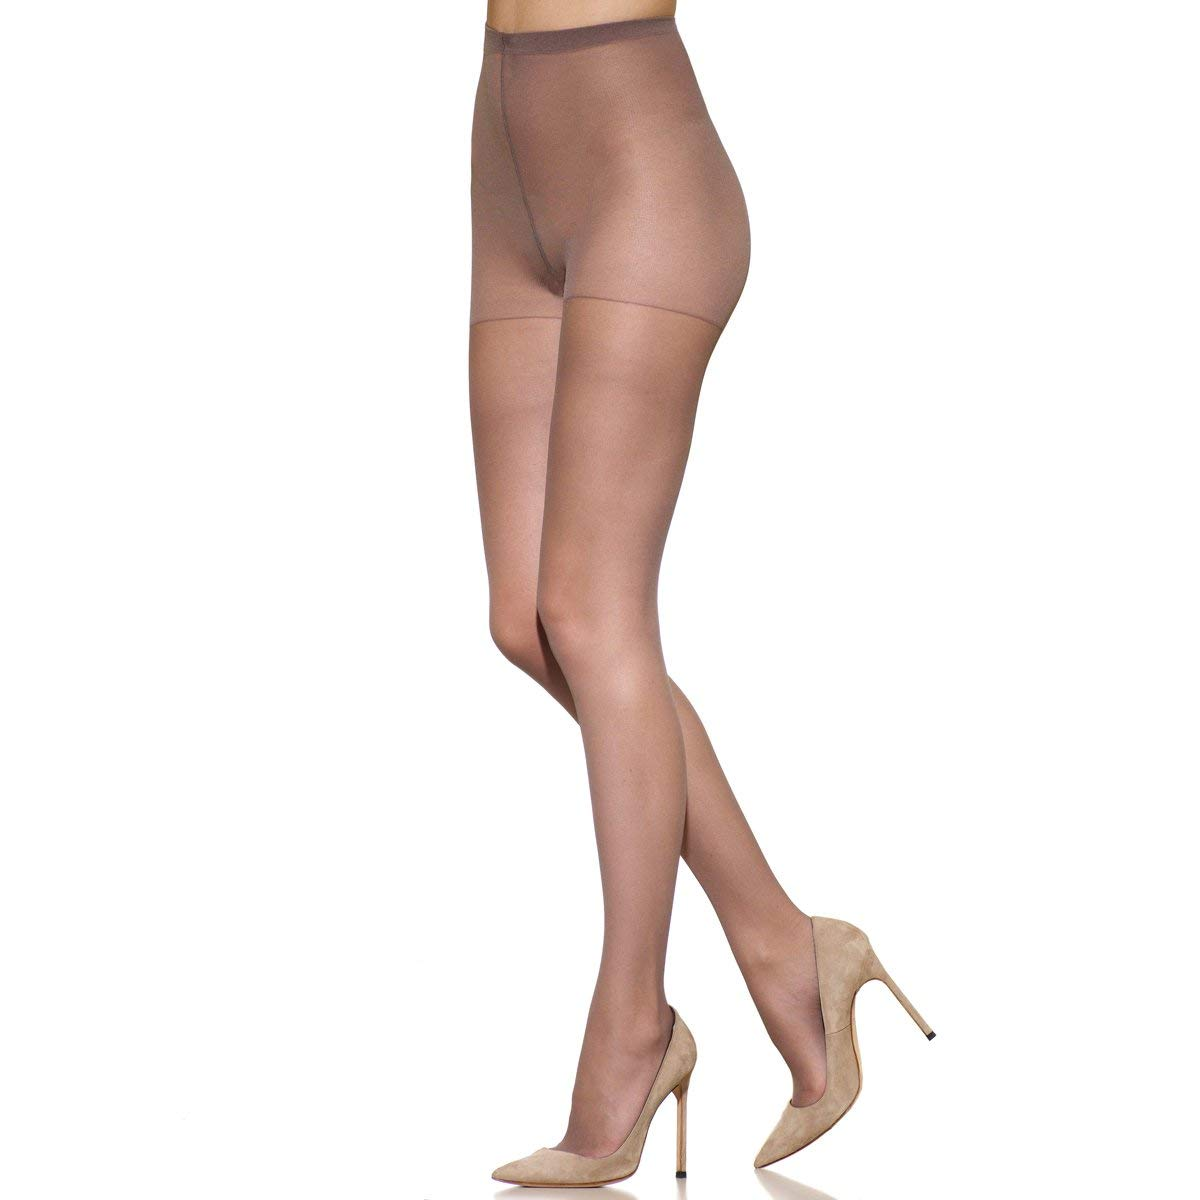 ad7daafbb86 Get Quotations · Silkies Women s TLC Total Leg Control Support Pantyhose